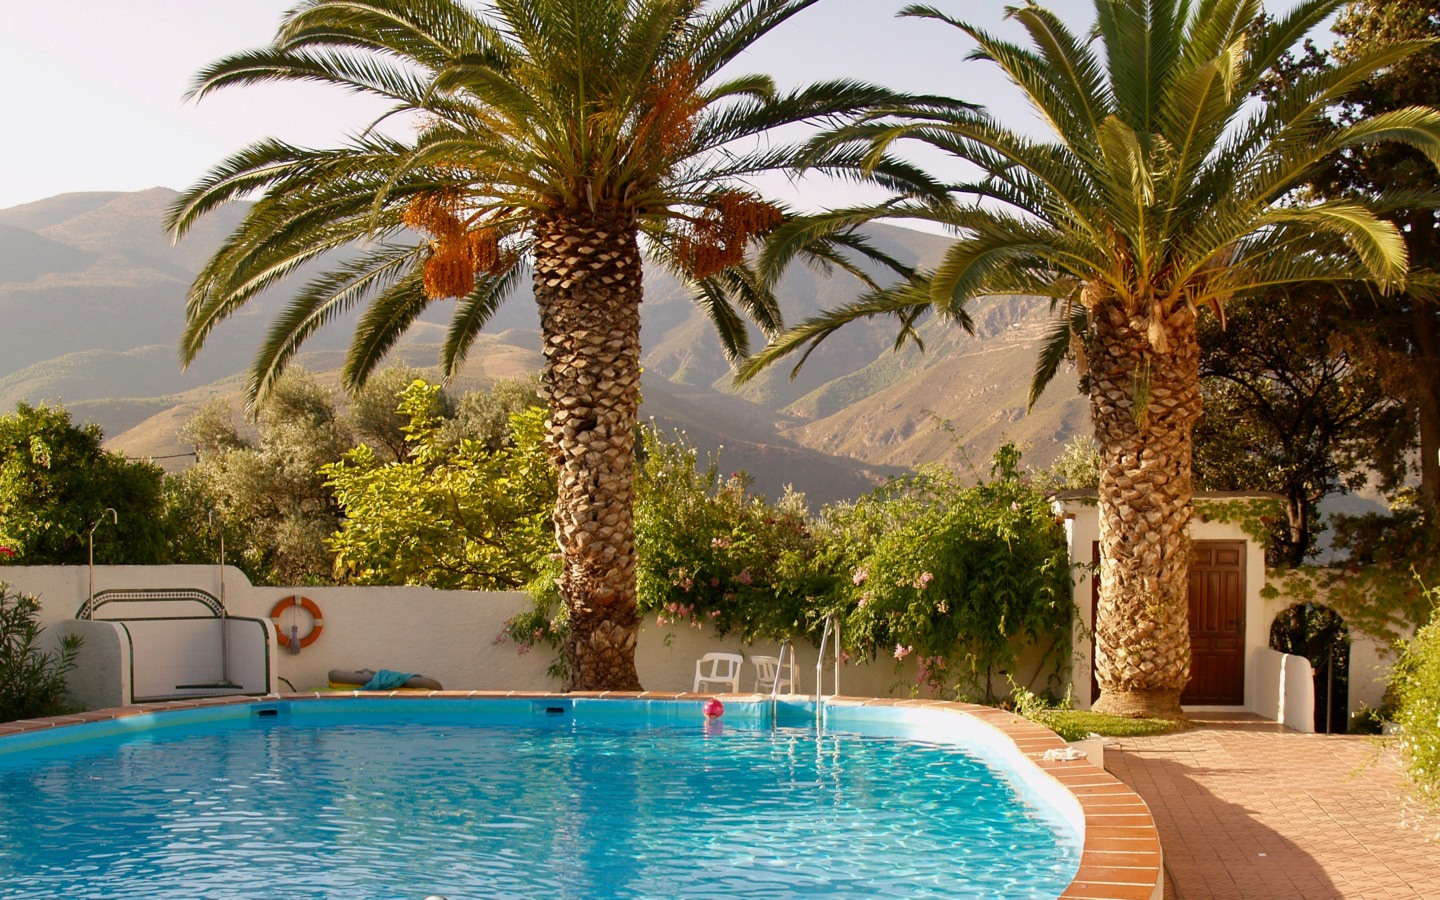 A solo trip to Cortijo Romero retreat in Spain